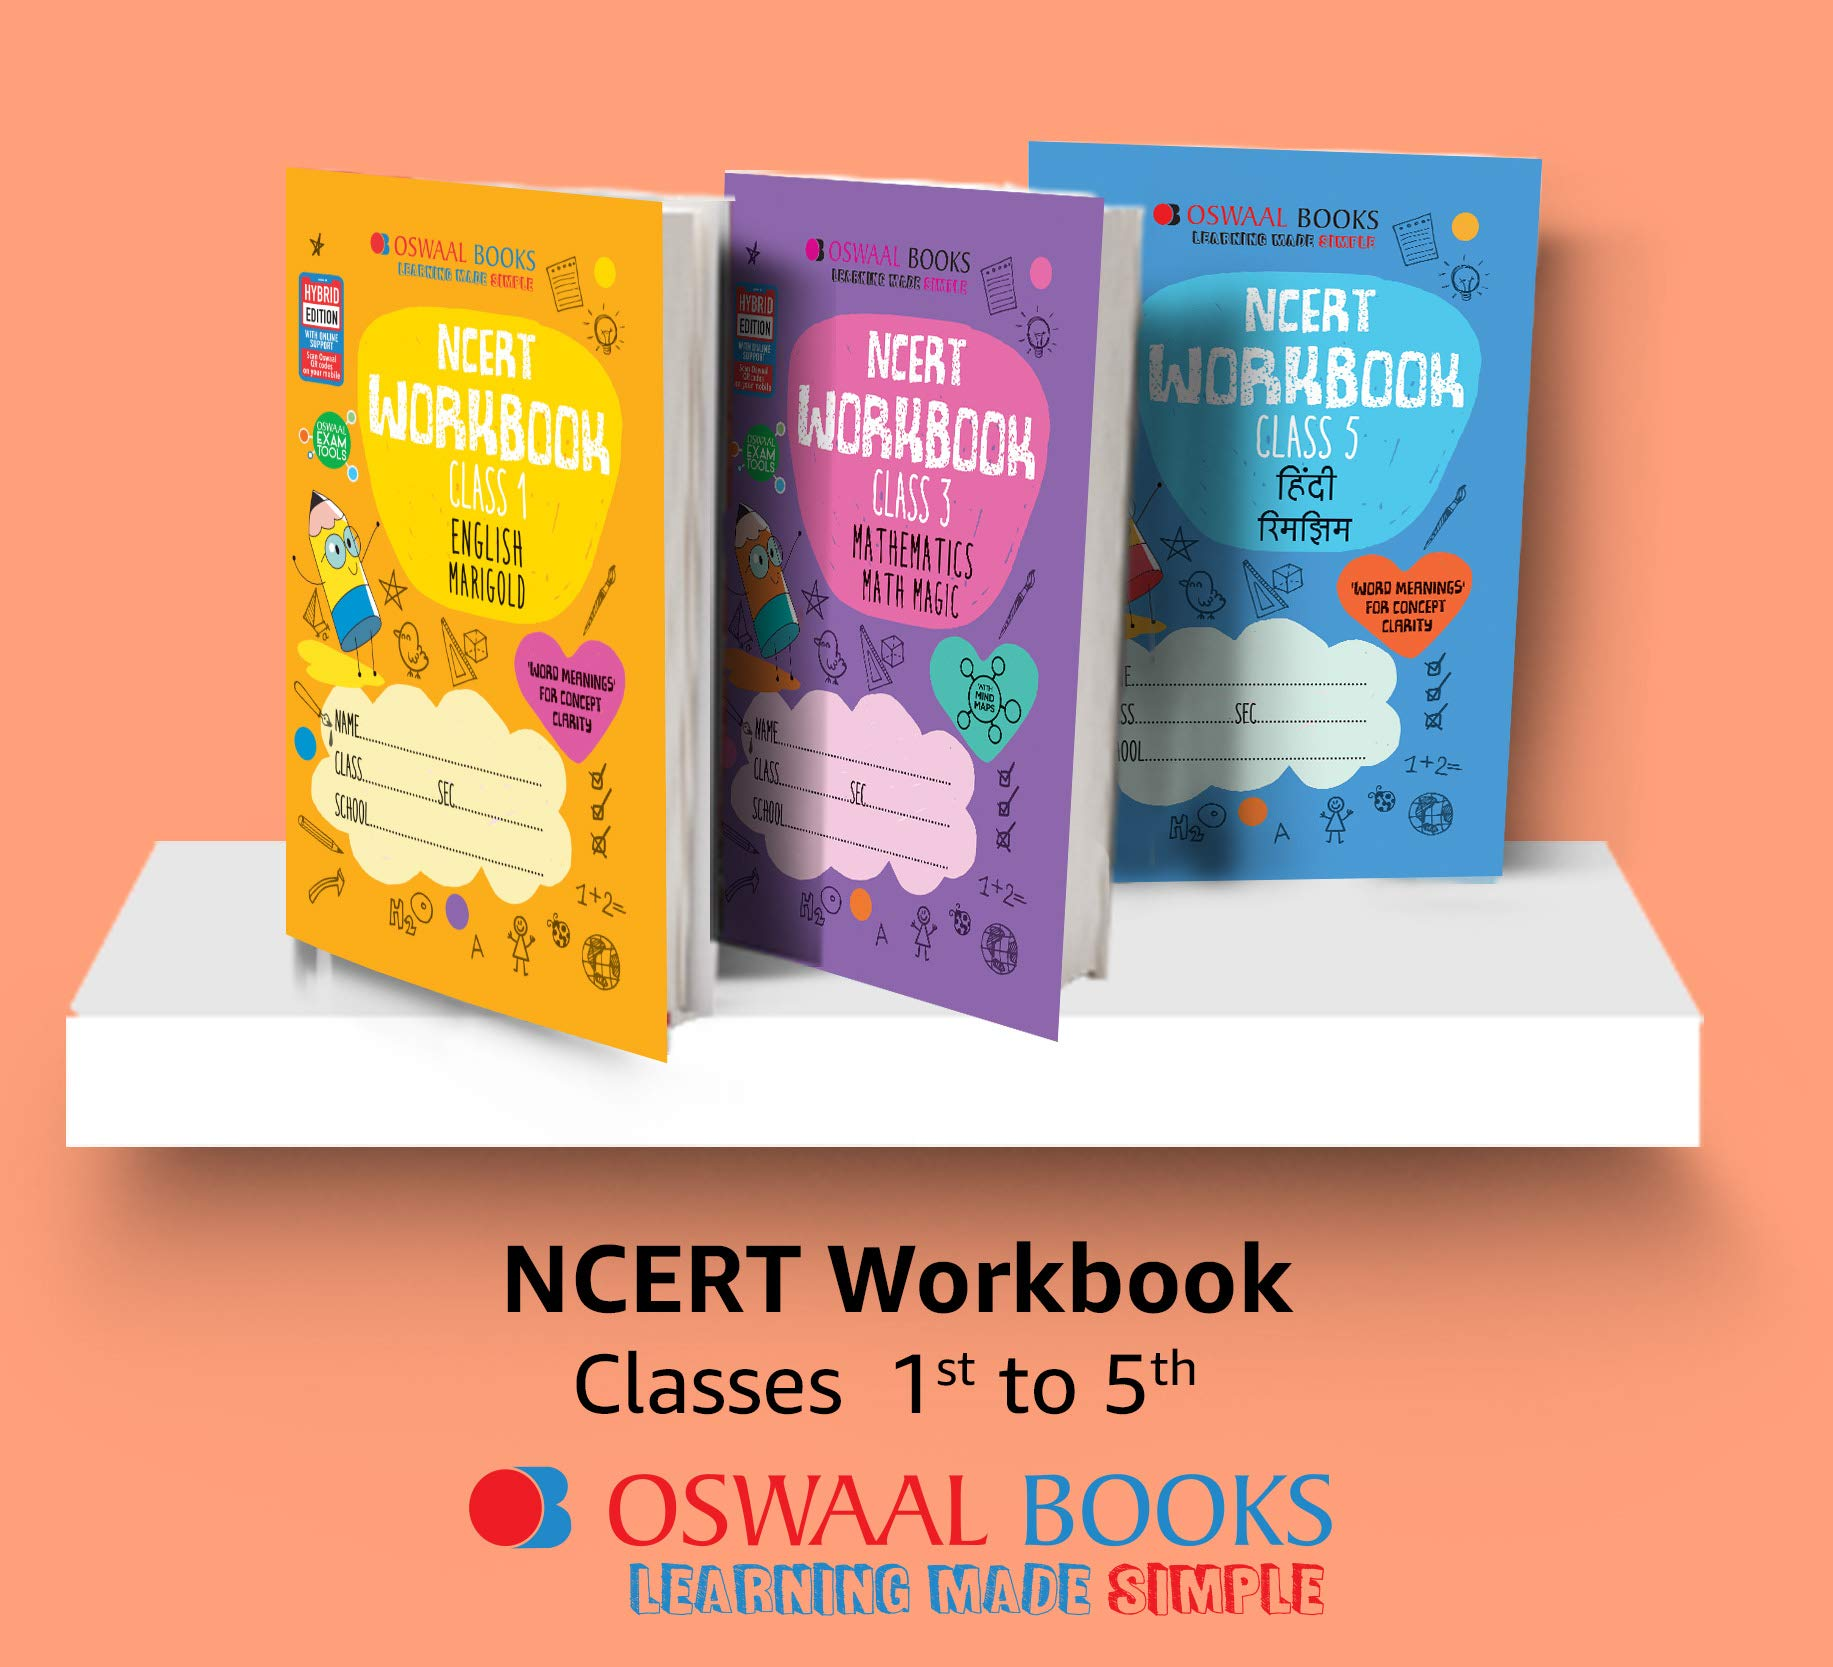 NCERT Workbook